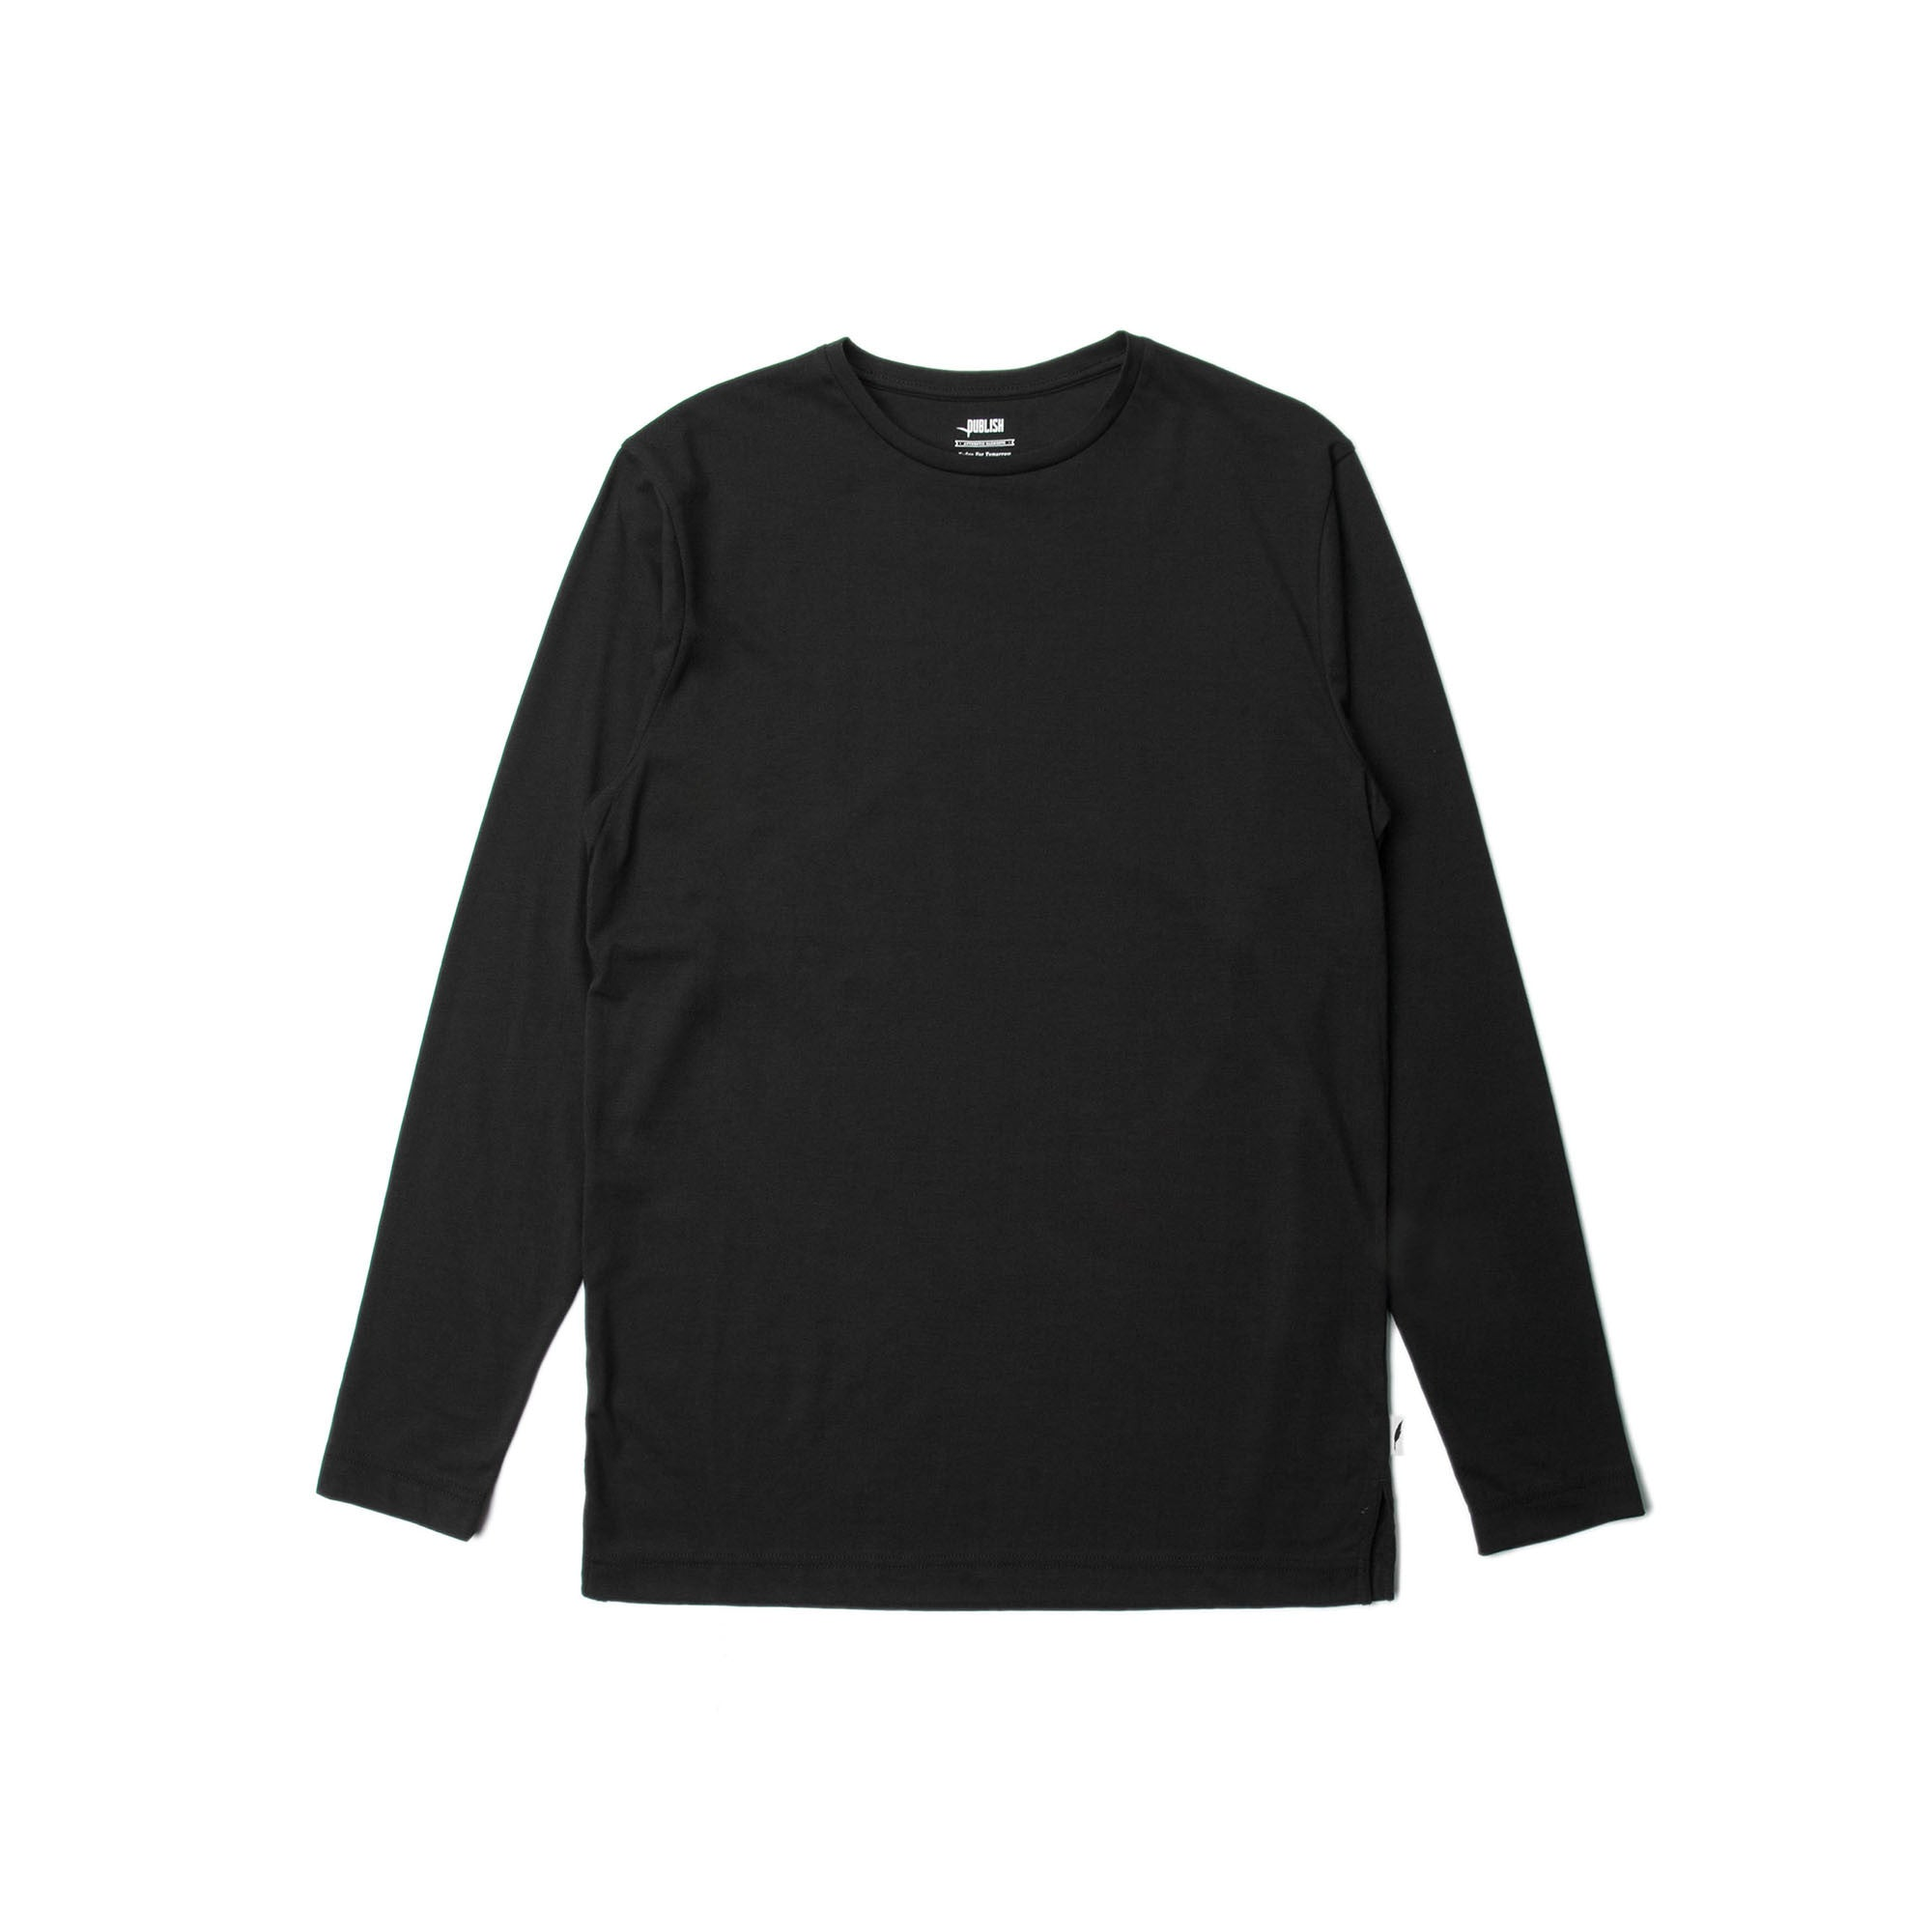 Index L/S Tee - Black